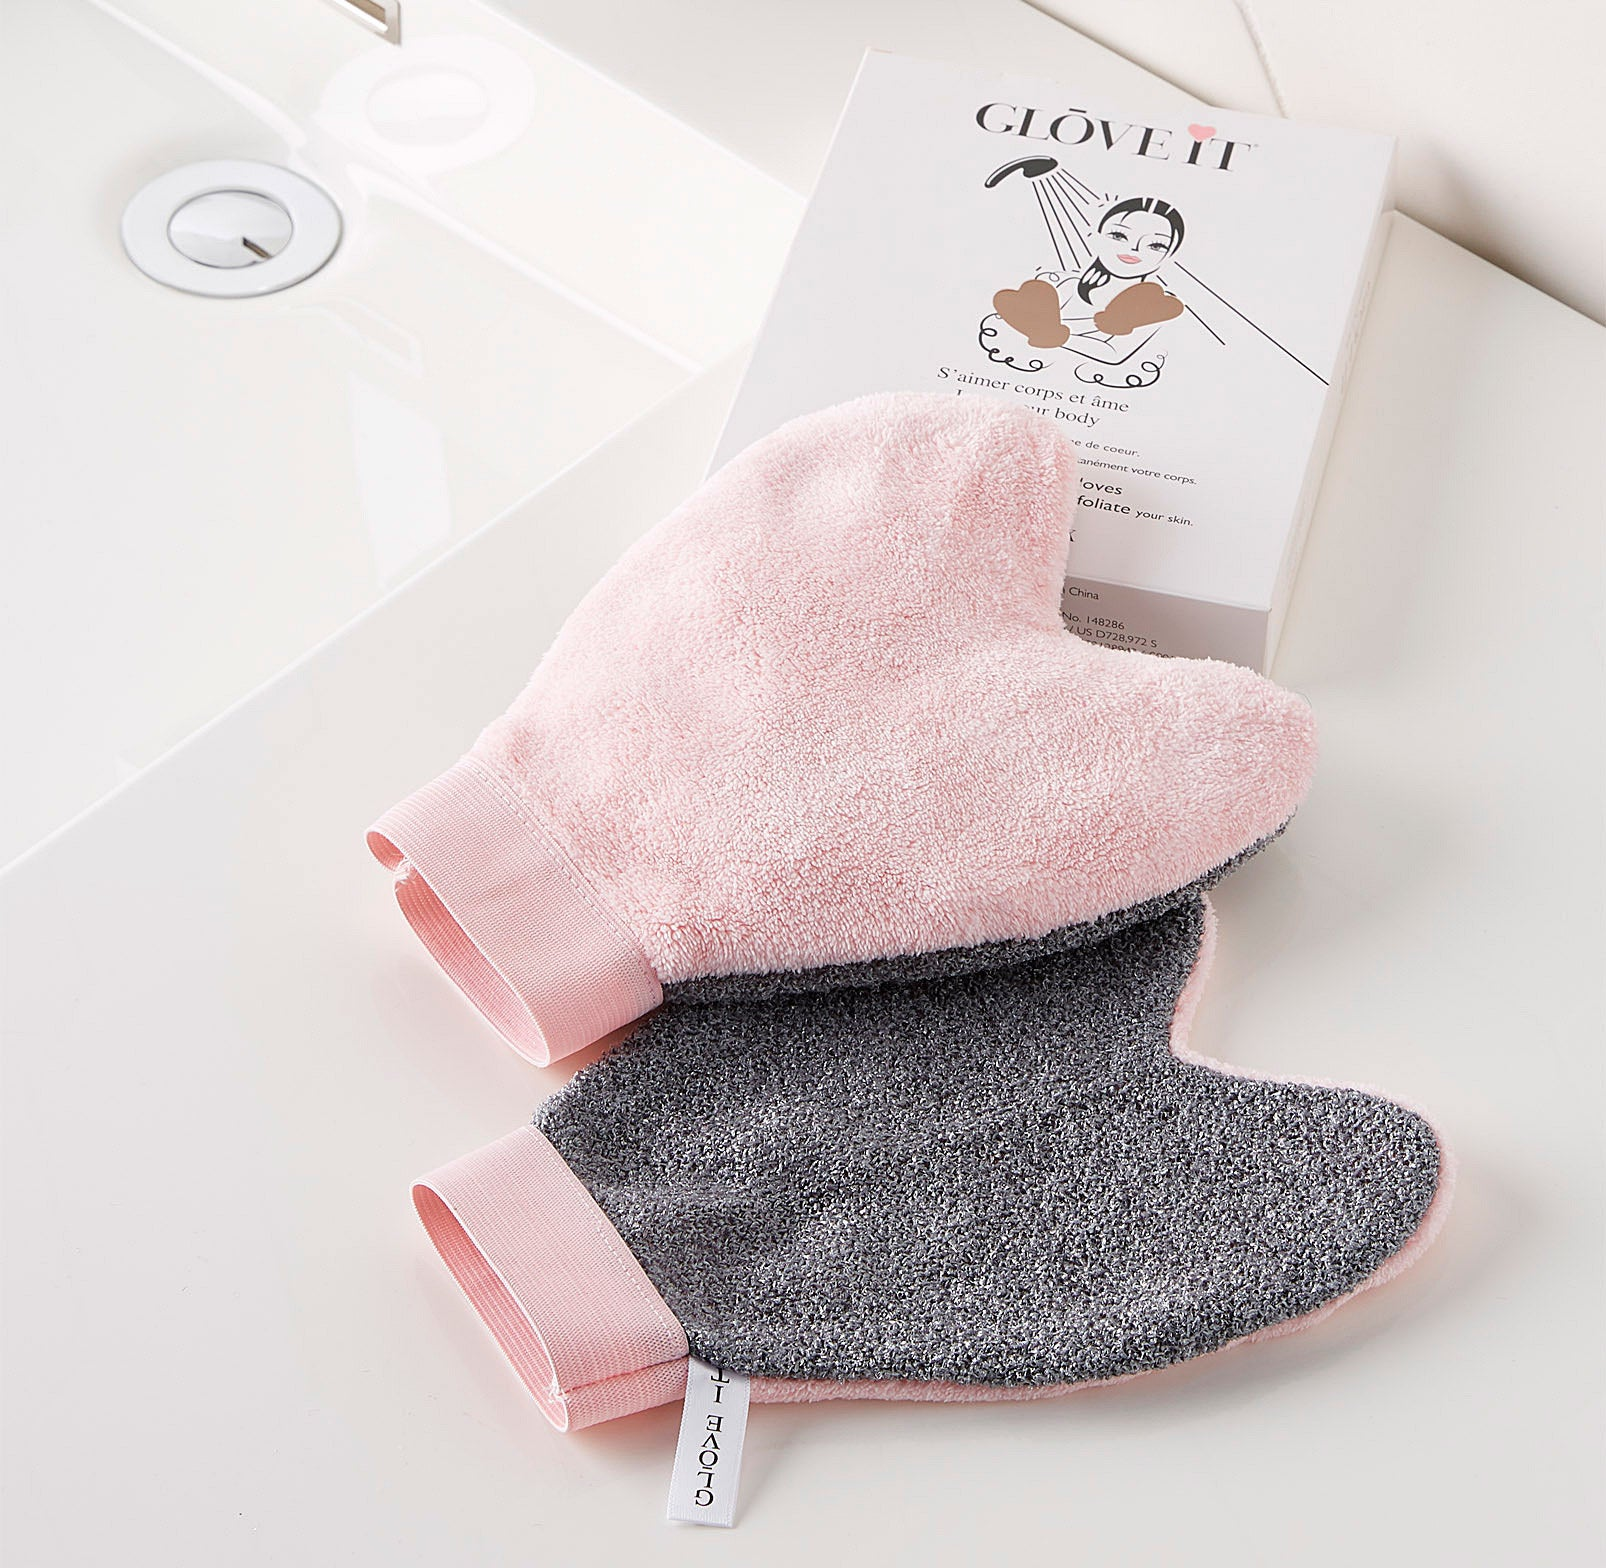 A pair of soft cloth wash gloves on a bathroom counter